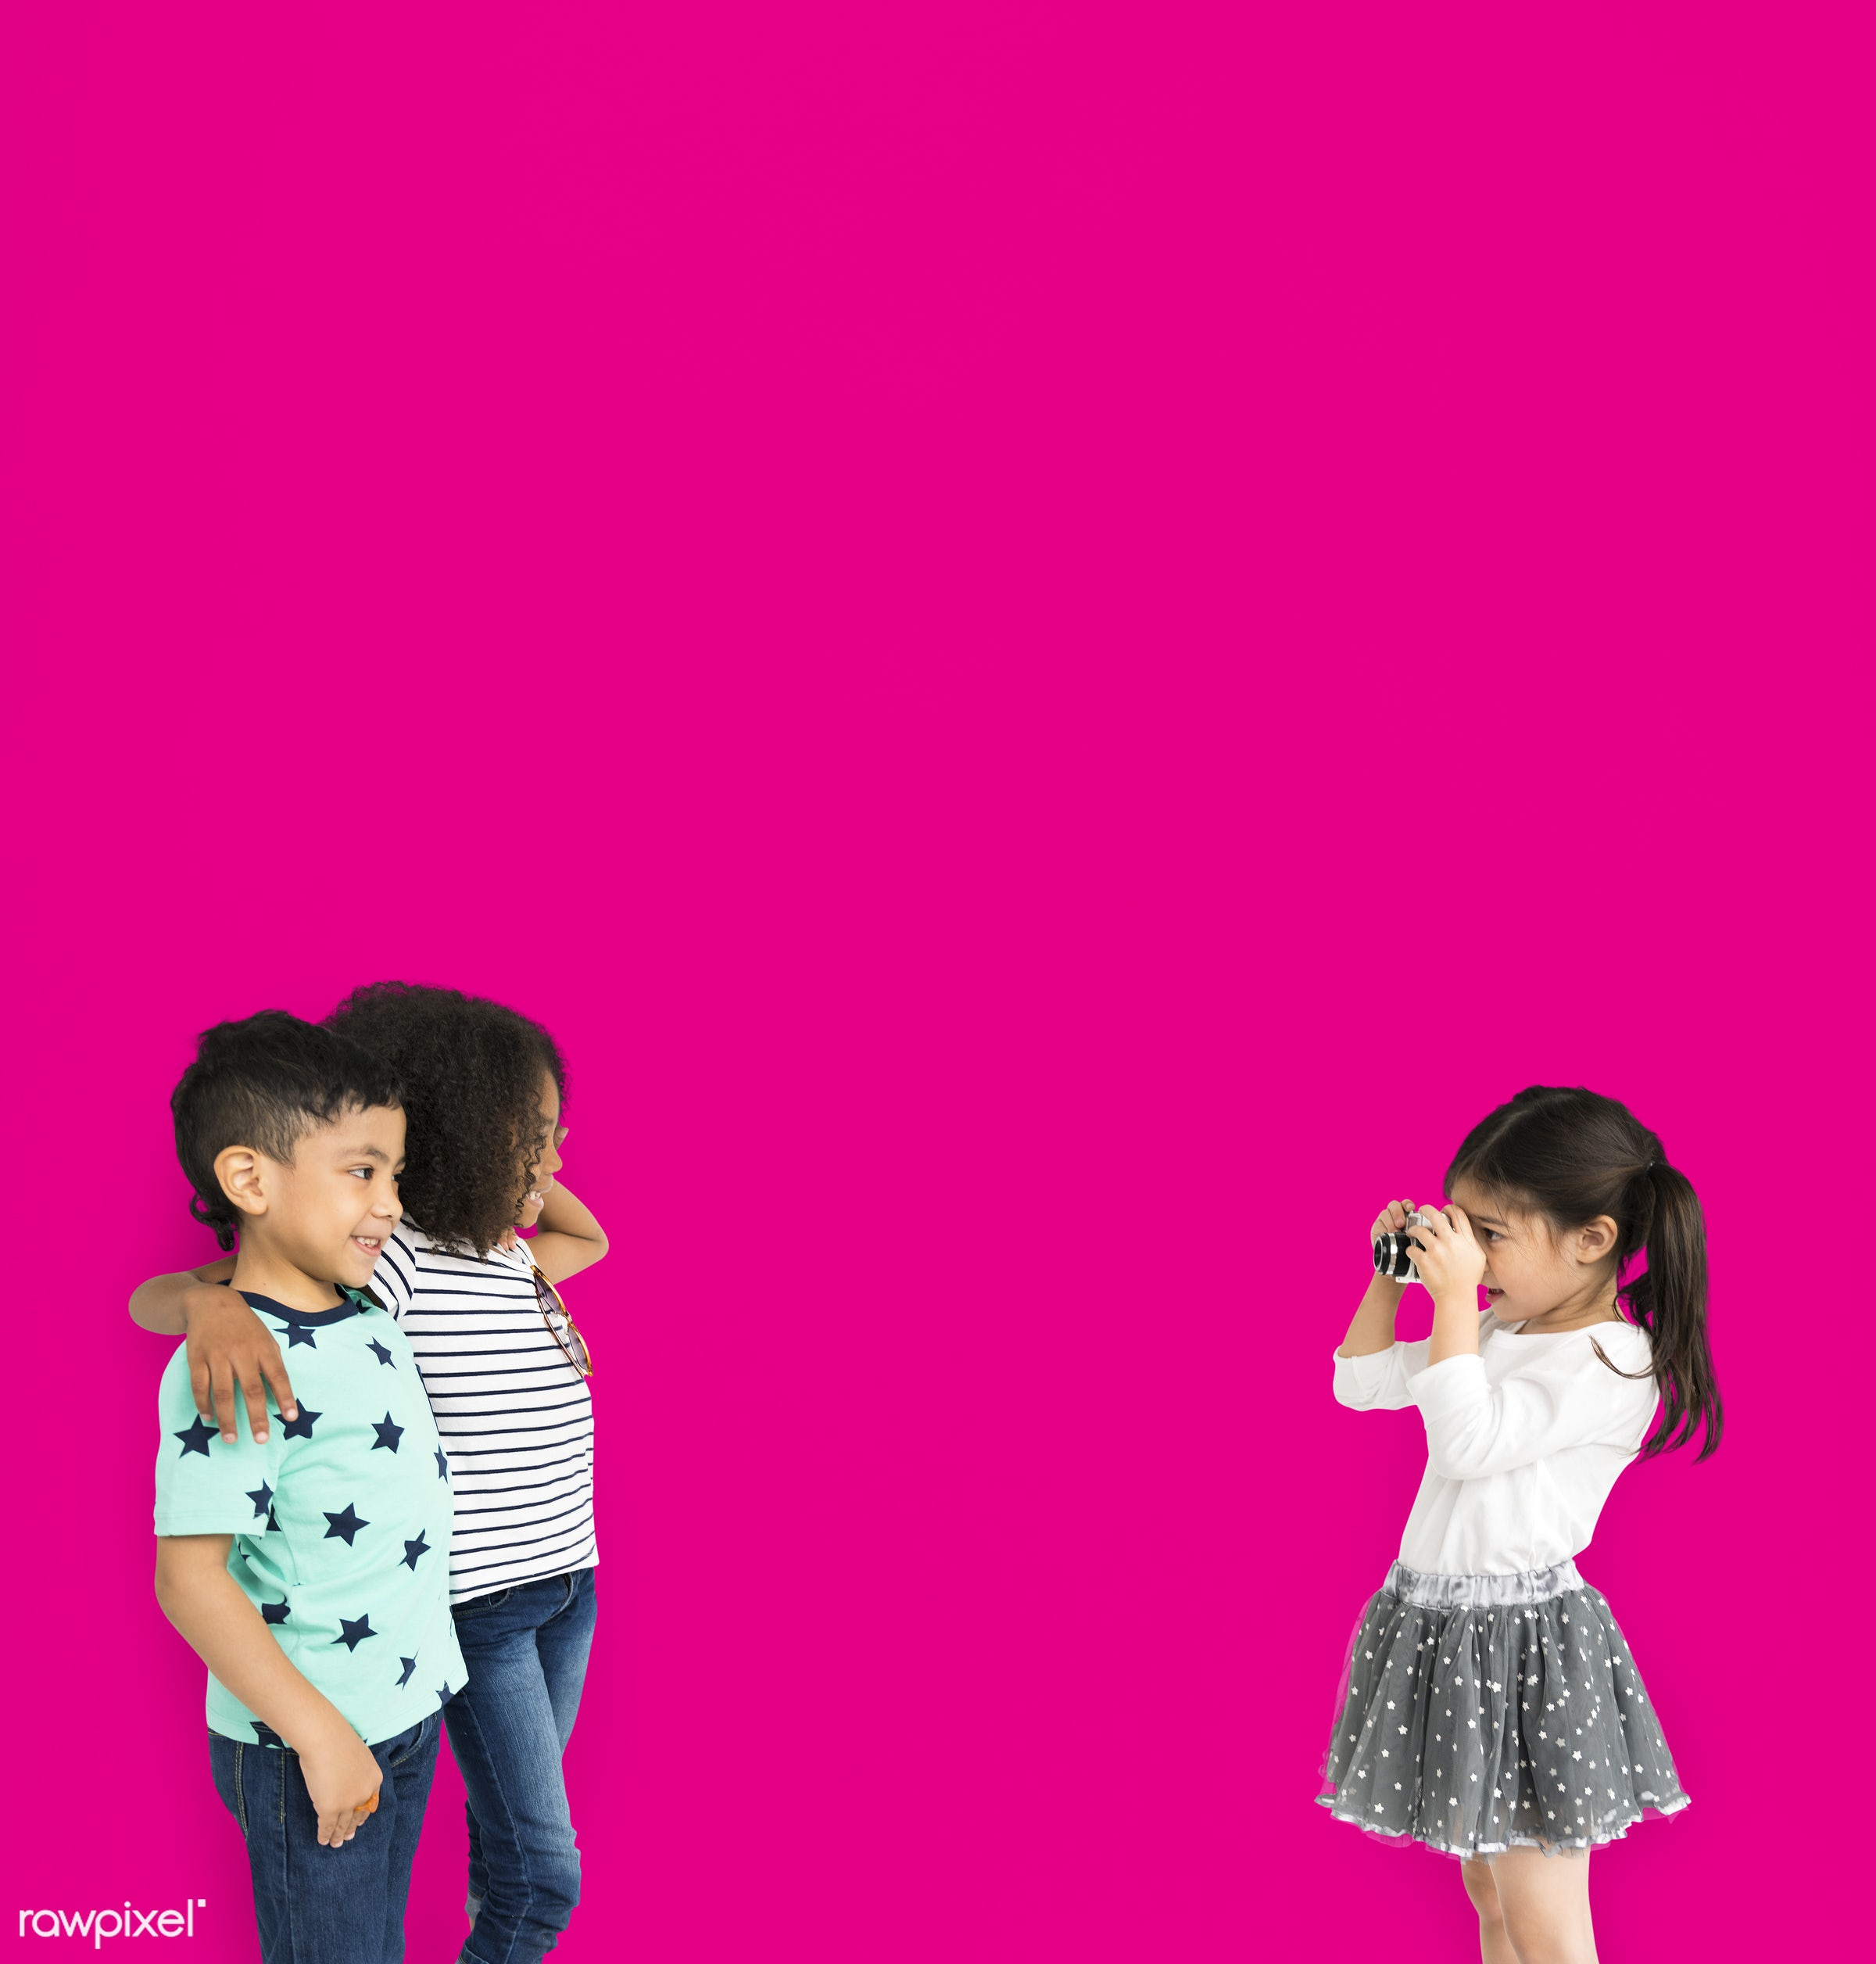 expression, studio, person, diverse, little, people, positivity, together, friends, friendship, pink, mixed race, positive,...